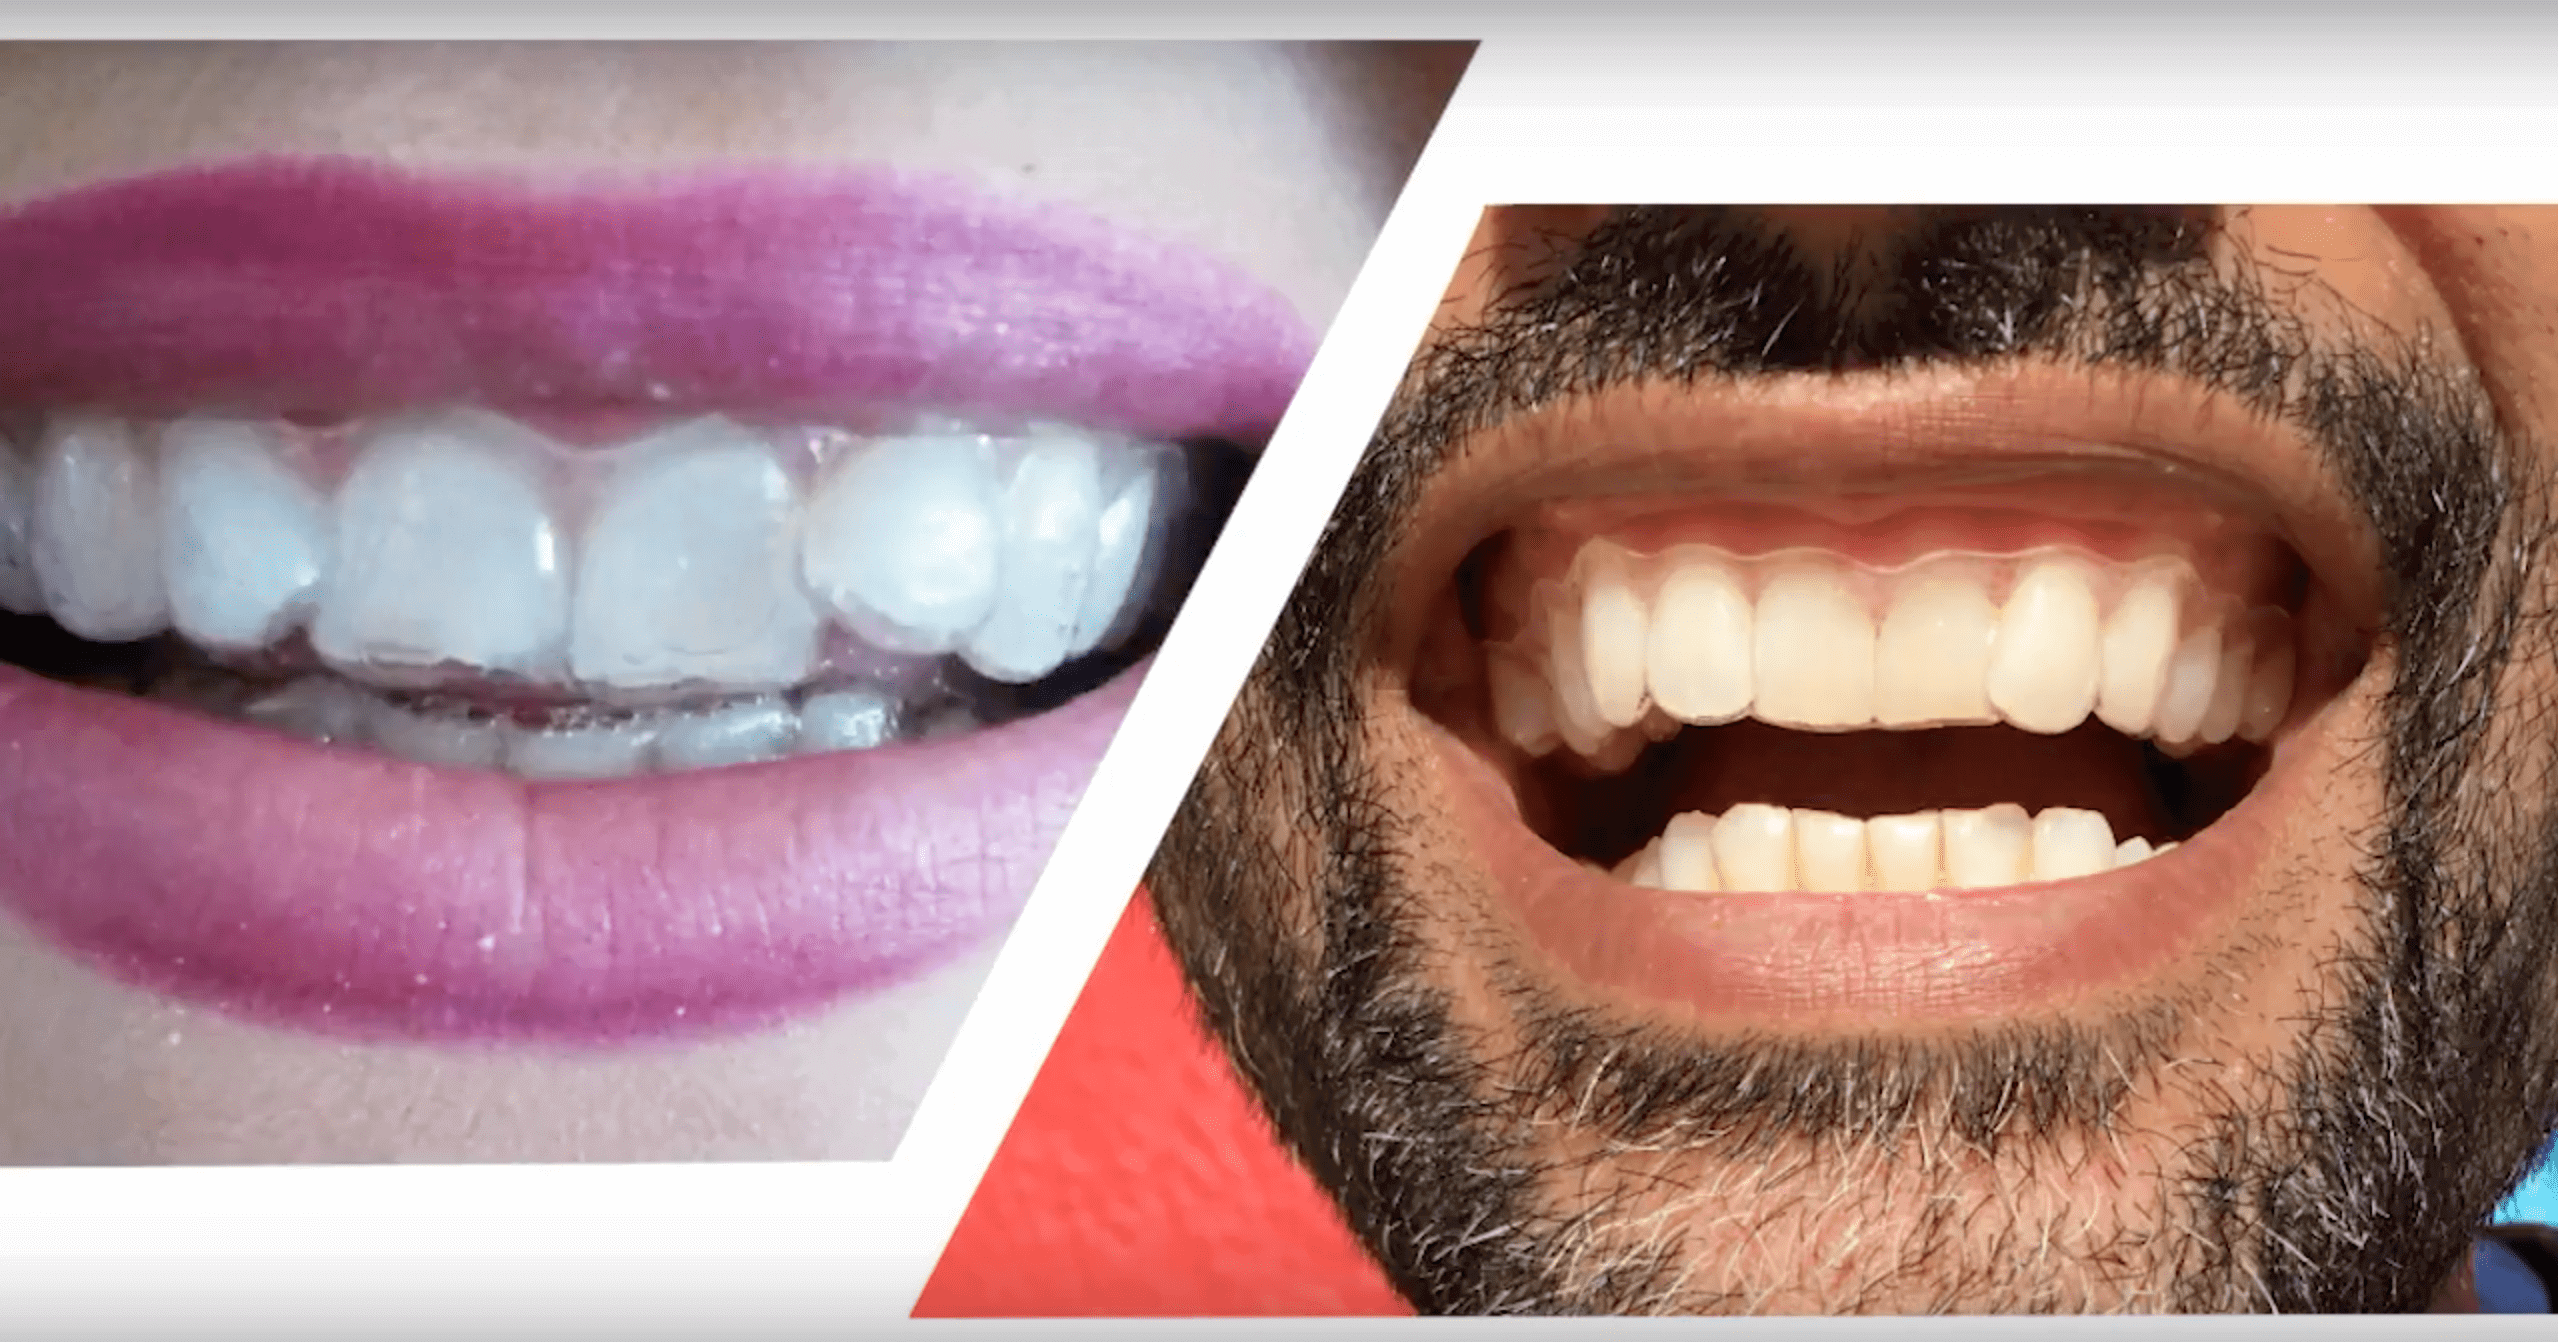 Cosmetic teeth straightening can you really get braces at home included in your cosmetic teeth straightening package youll get all your progress reviews with your orthodontist yes not going to a dentist in person solutioingenieria Images